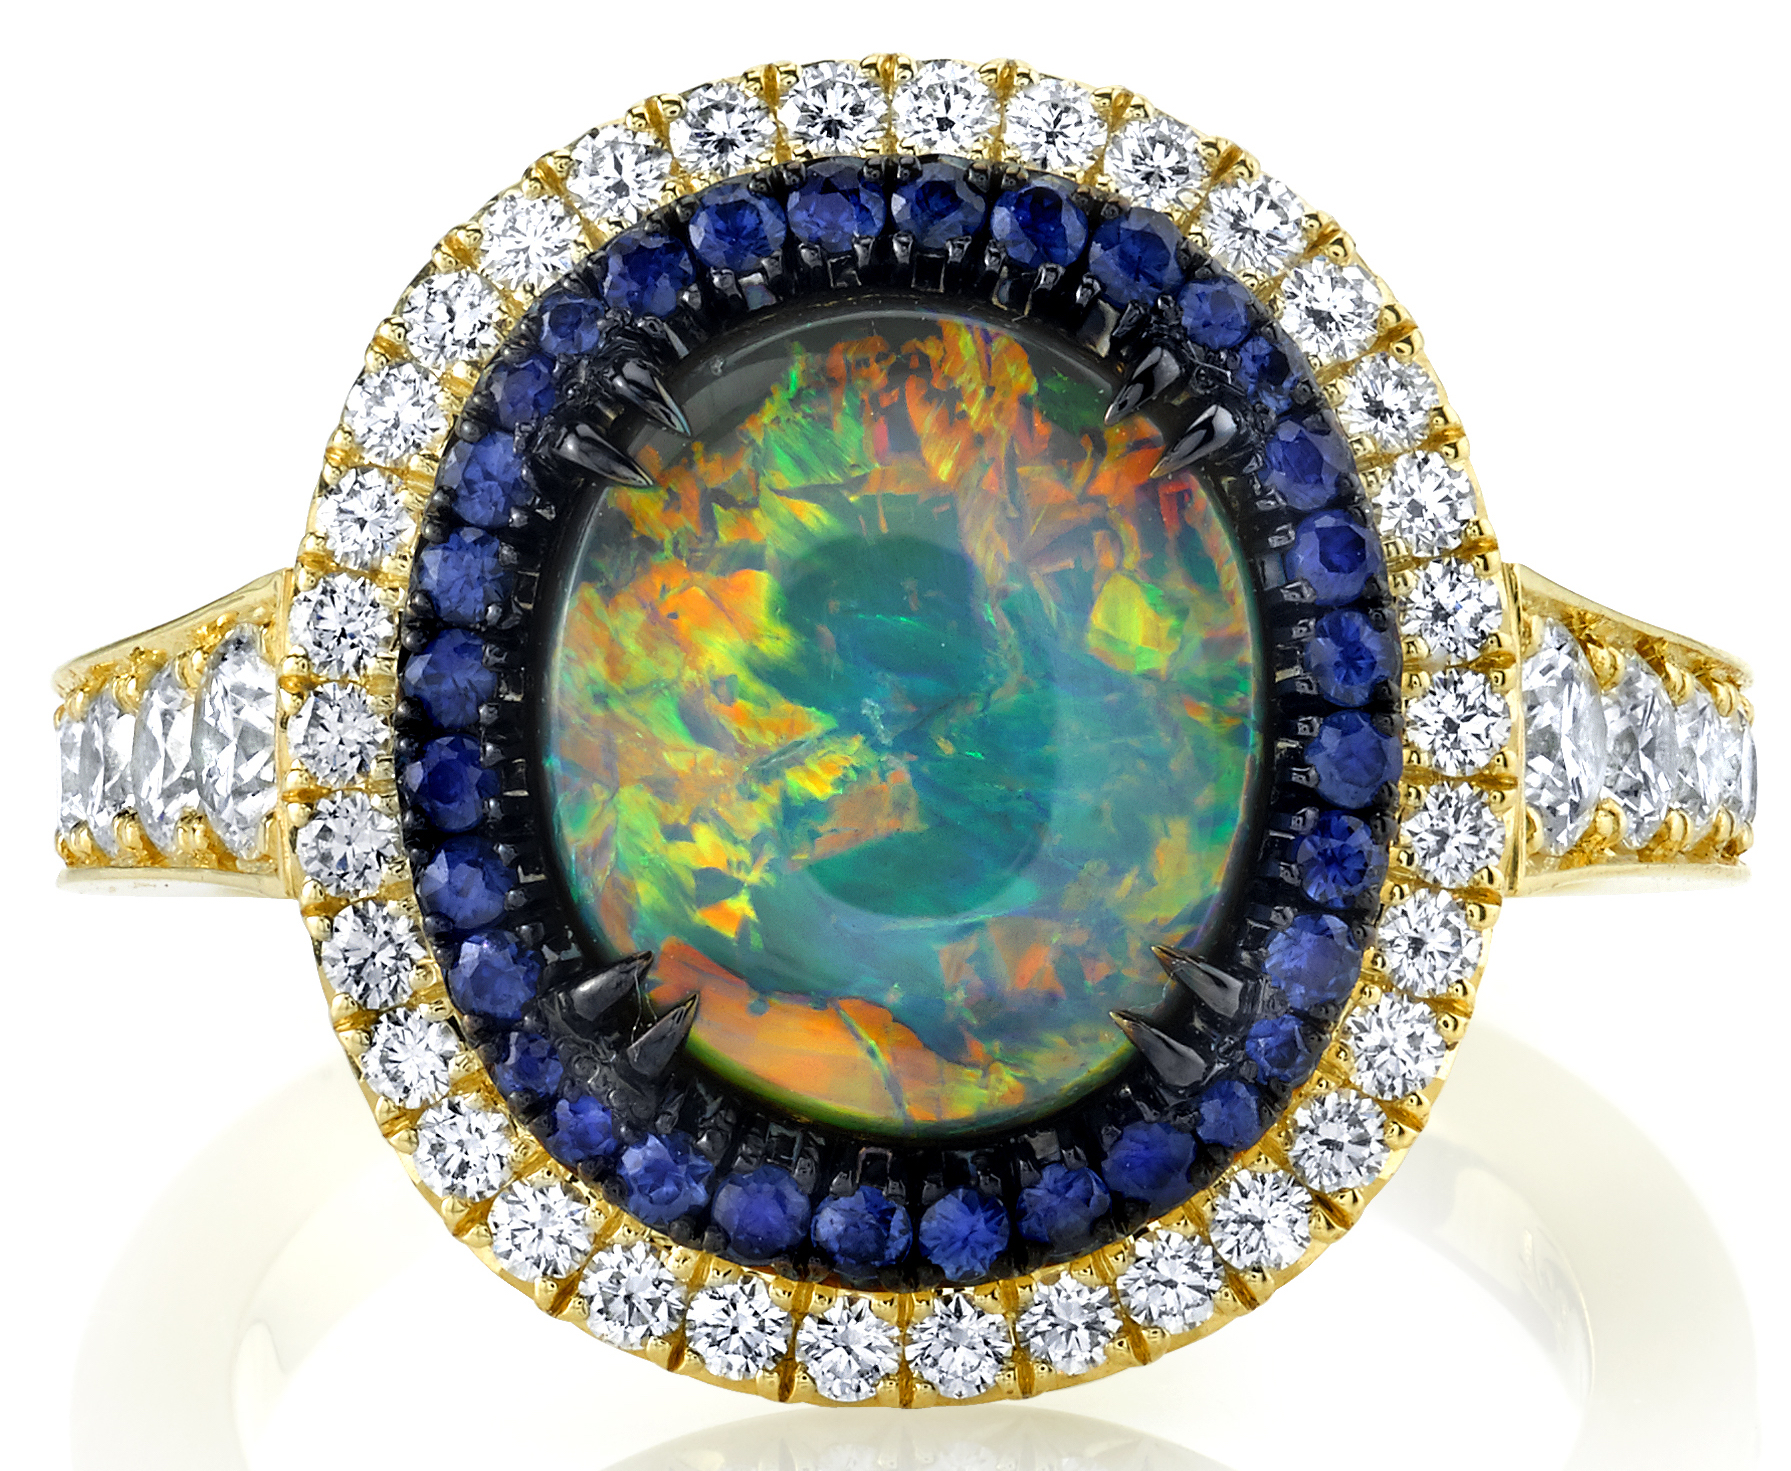 Omi Privé black opal Duet ring| JCK On Your Market